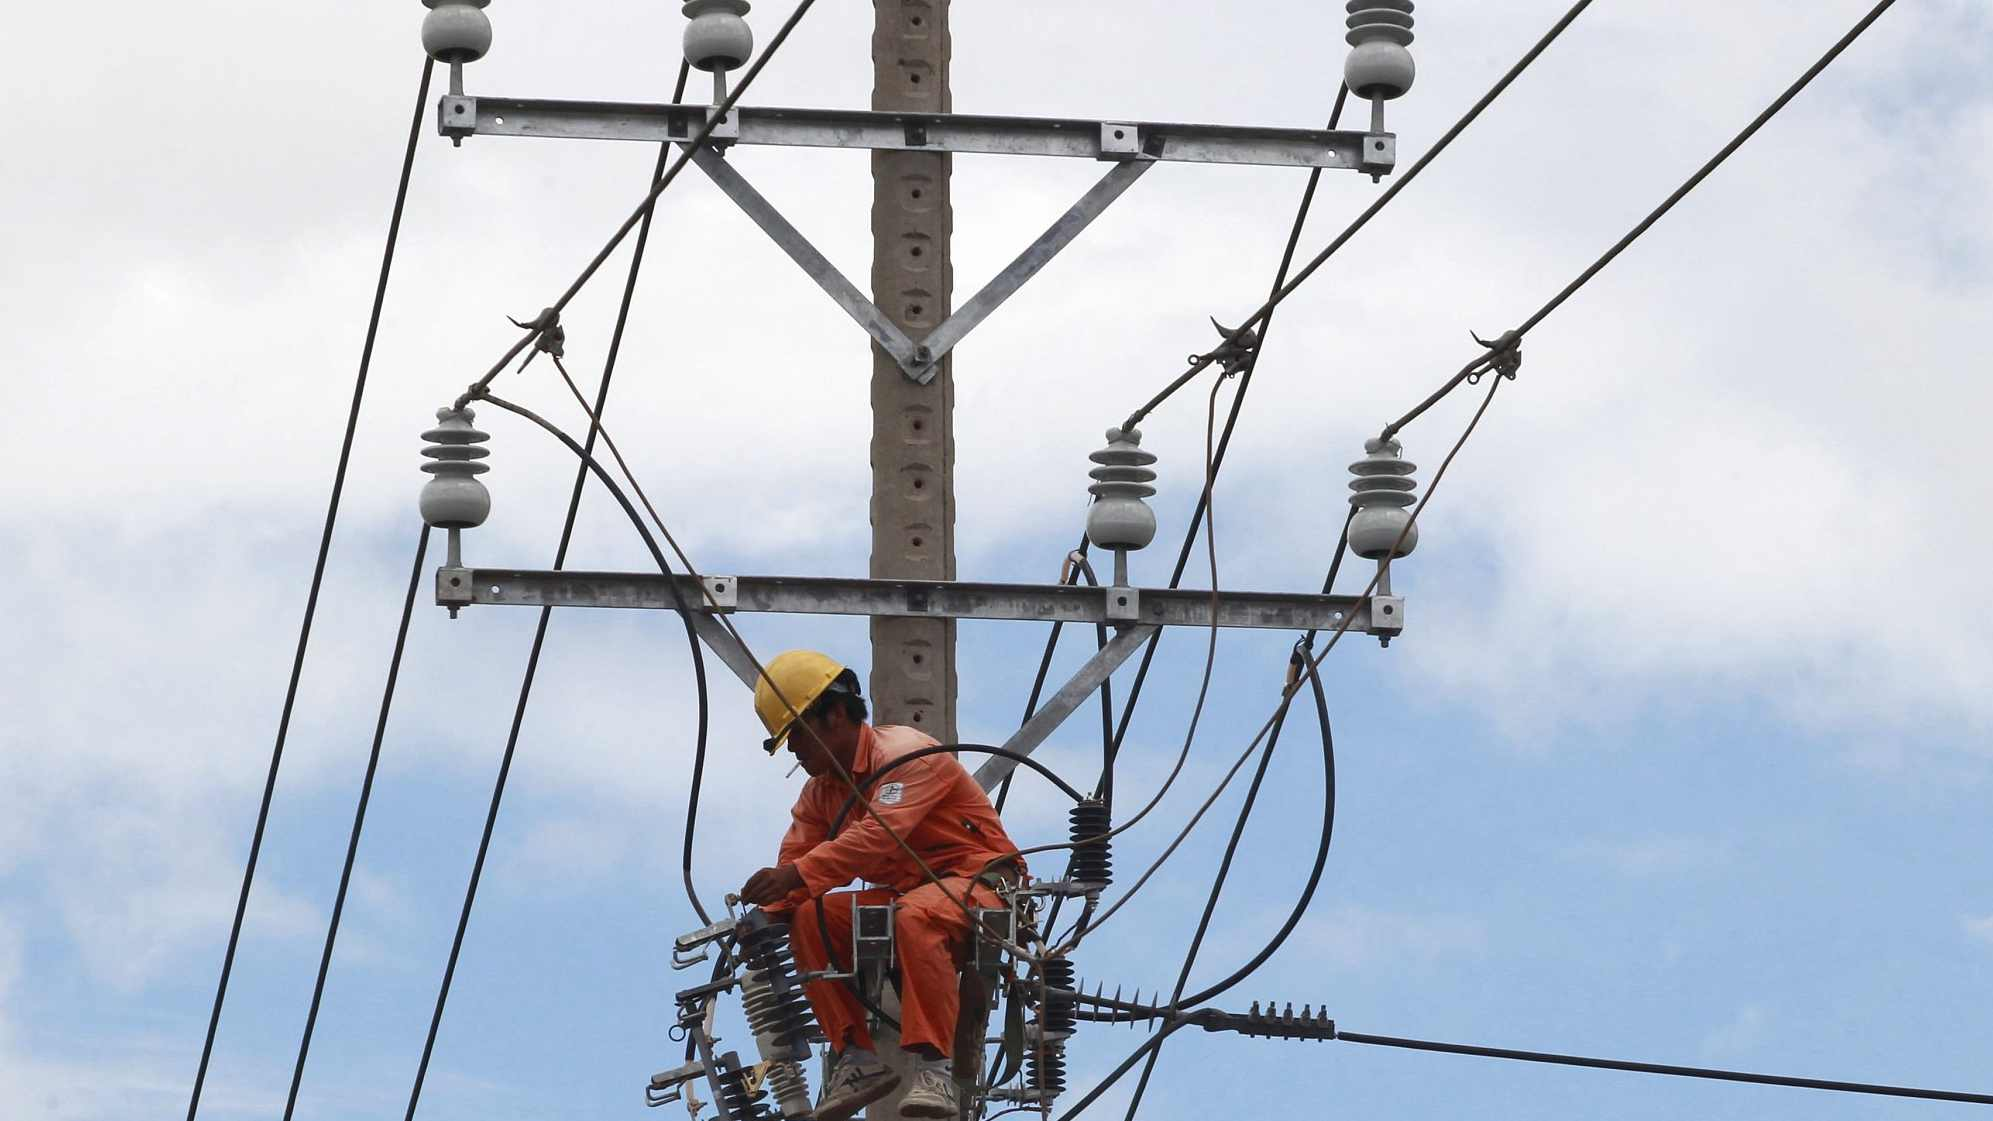 South Vietnam to experience electricity shortages